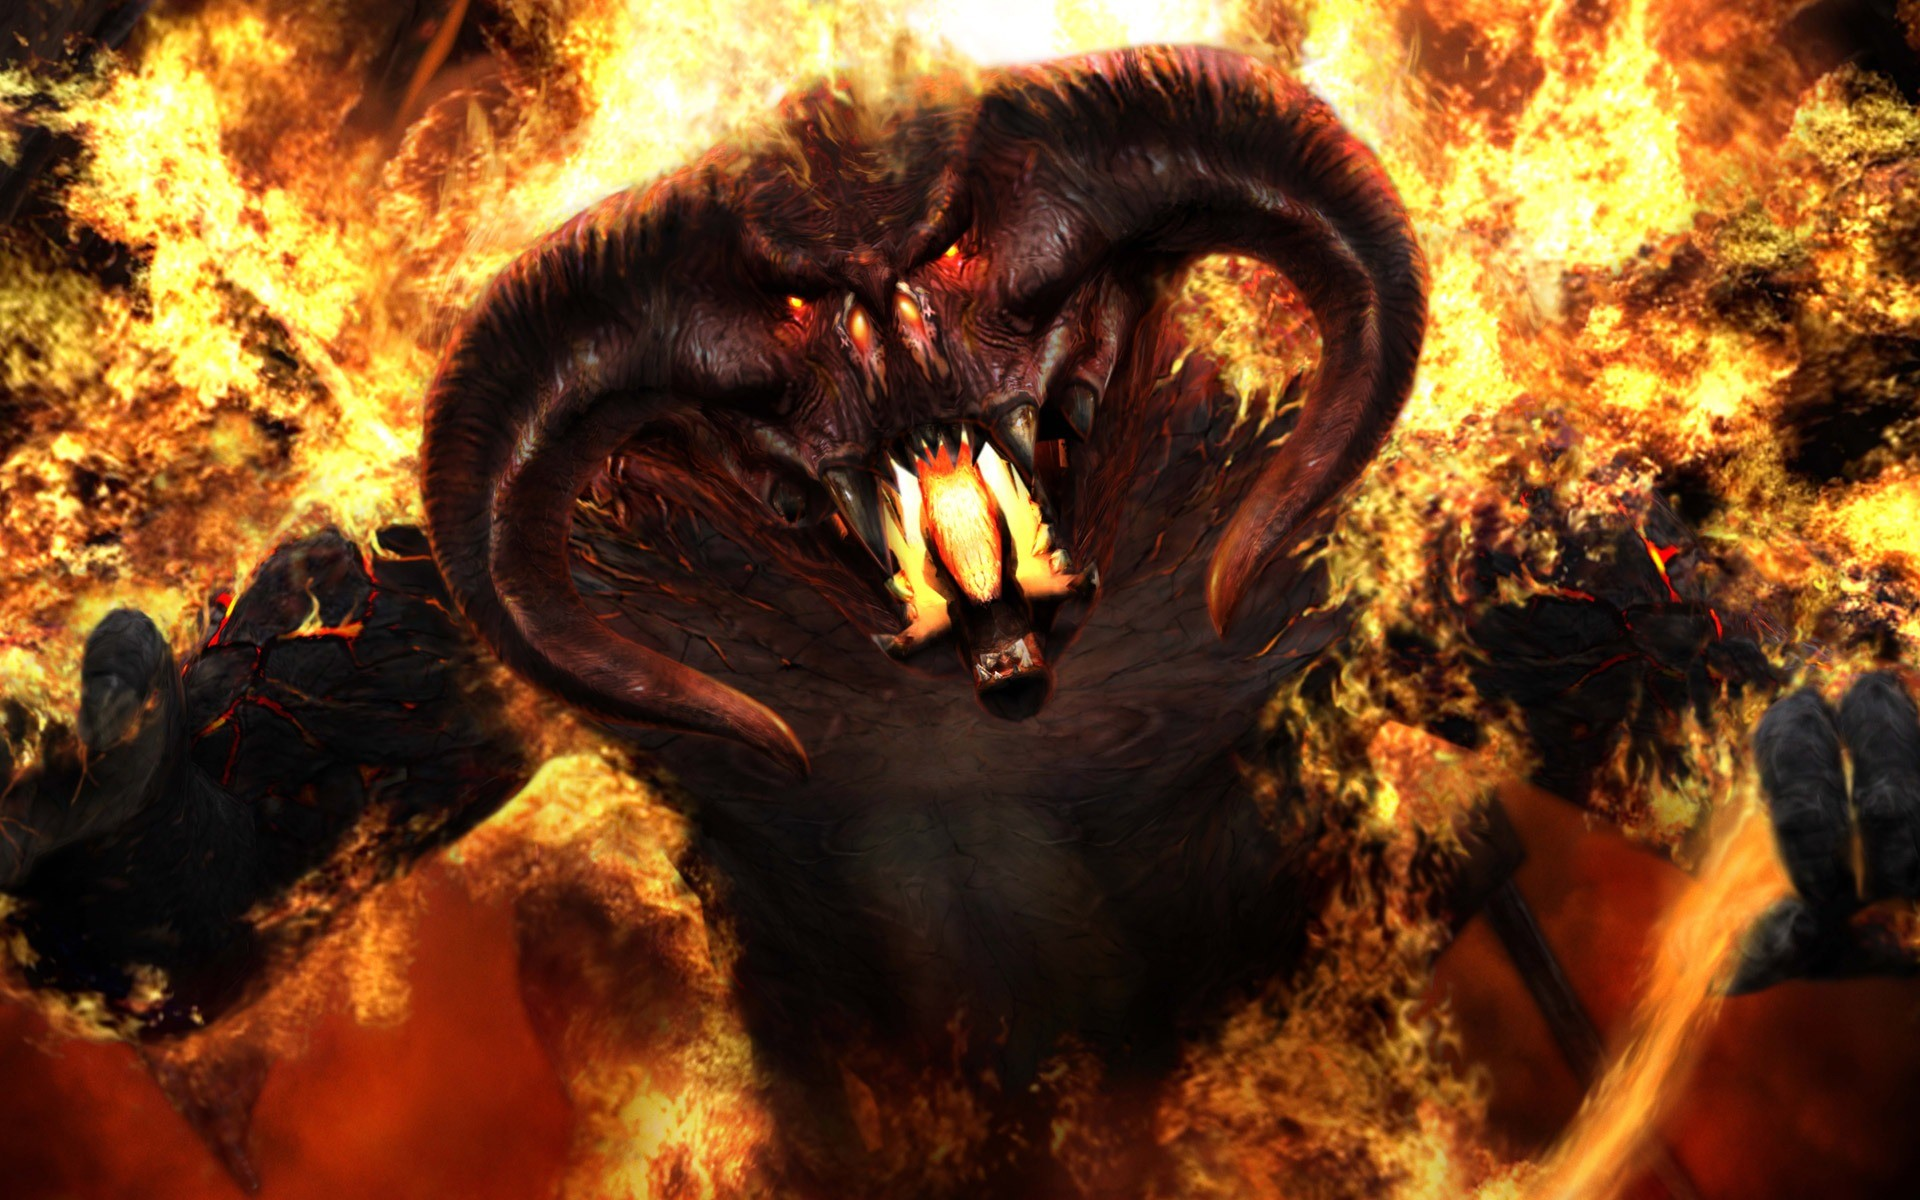 Res: 1920x1200, Beast On Fire Wallpaper Abstract 3D